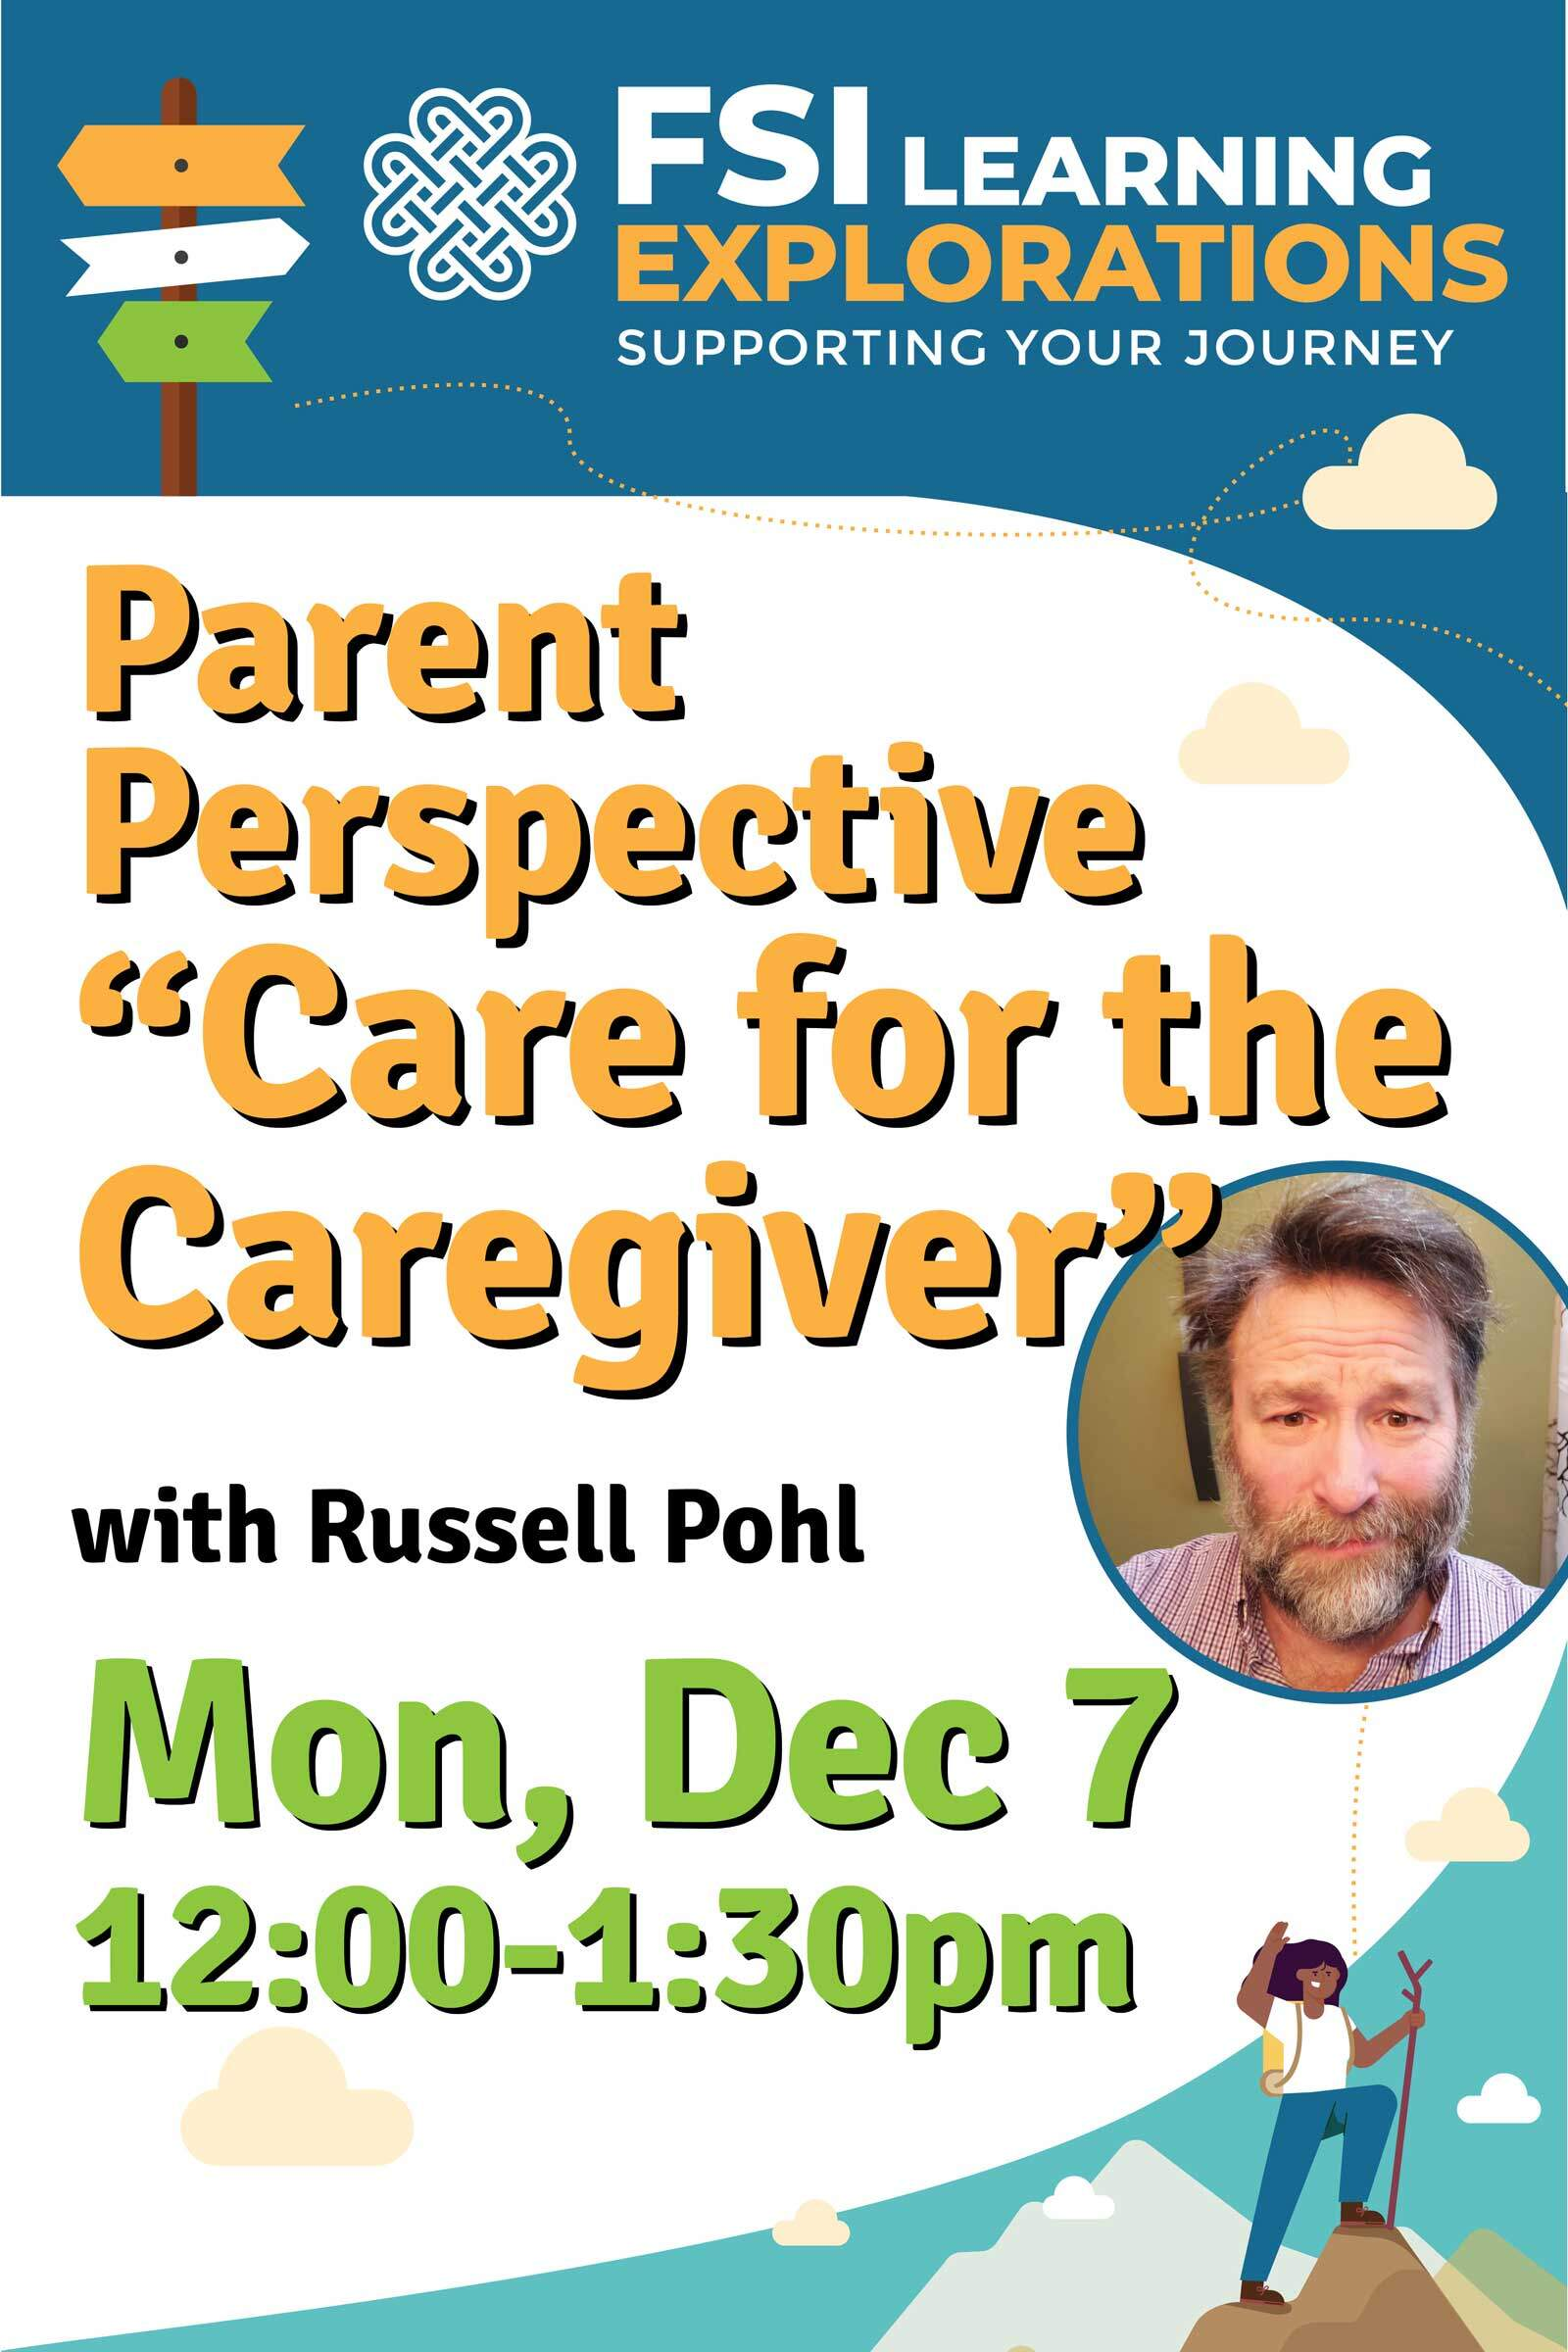 FSI Learning Explorations - Parent Perspective: Care for the Caregiver